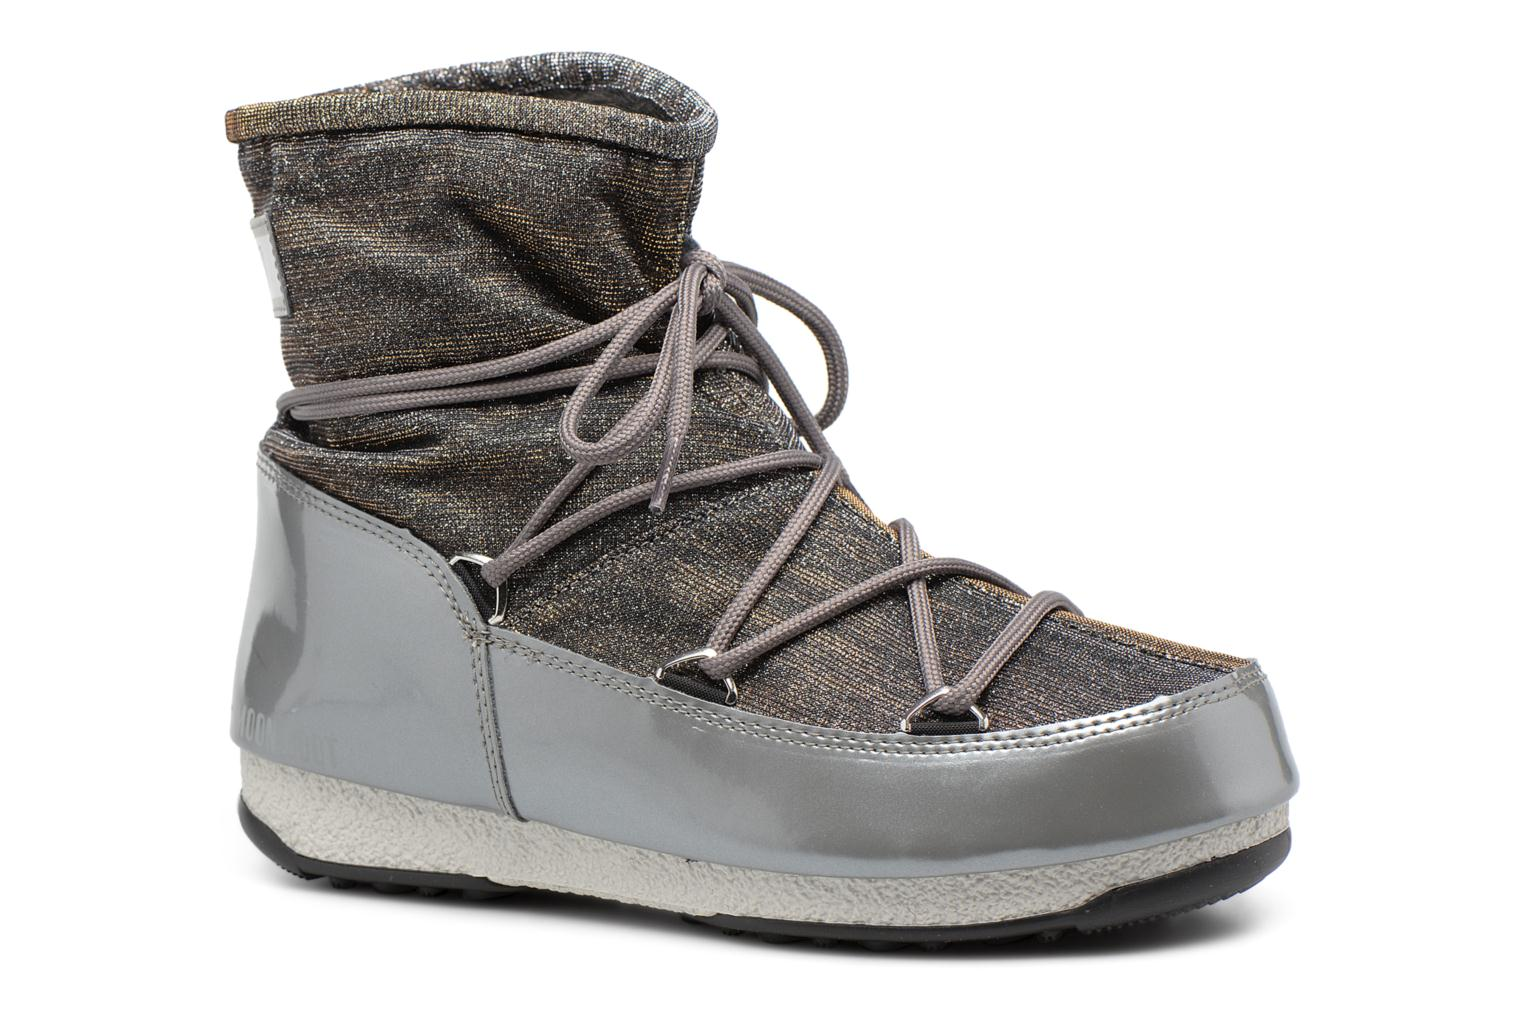 Boot Low Lurex Moon Boot Lurex Greysilver Moon Low zExxf1